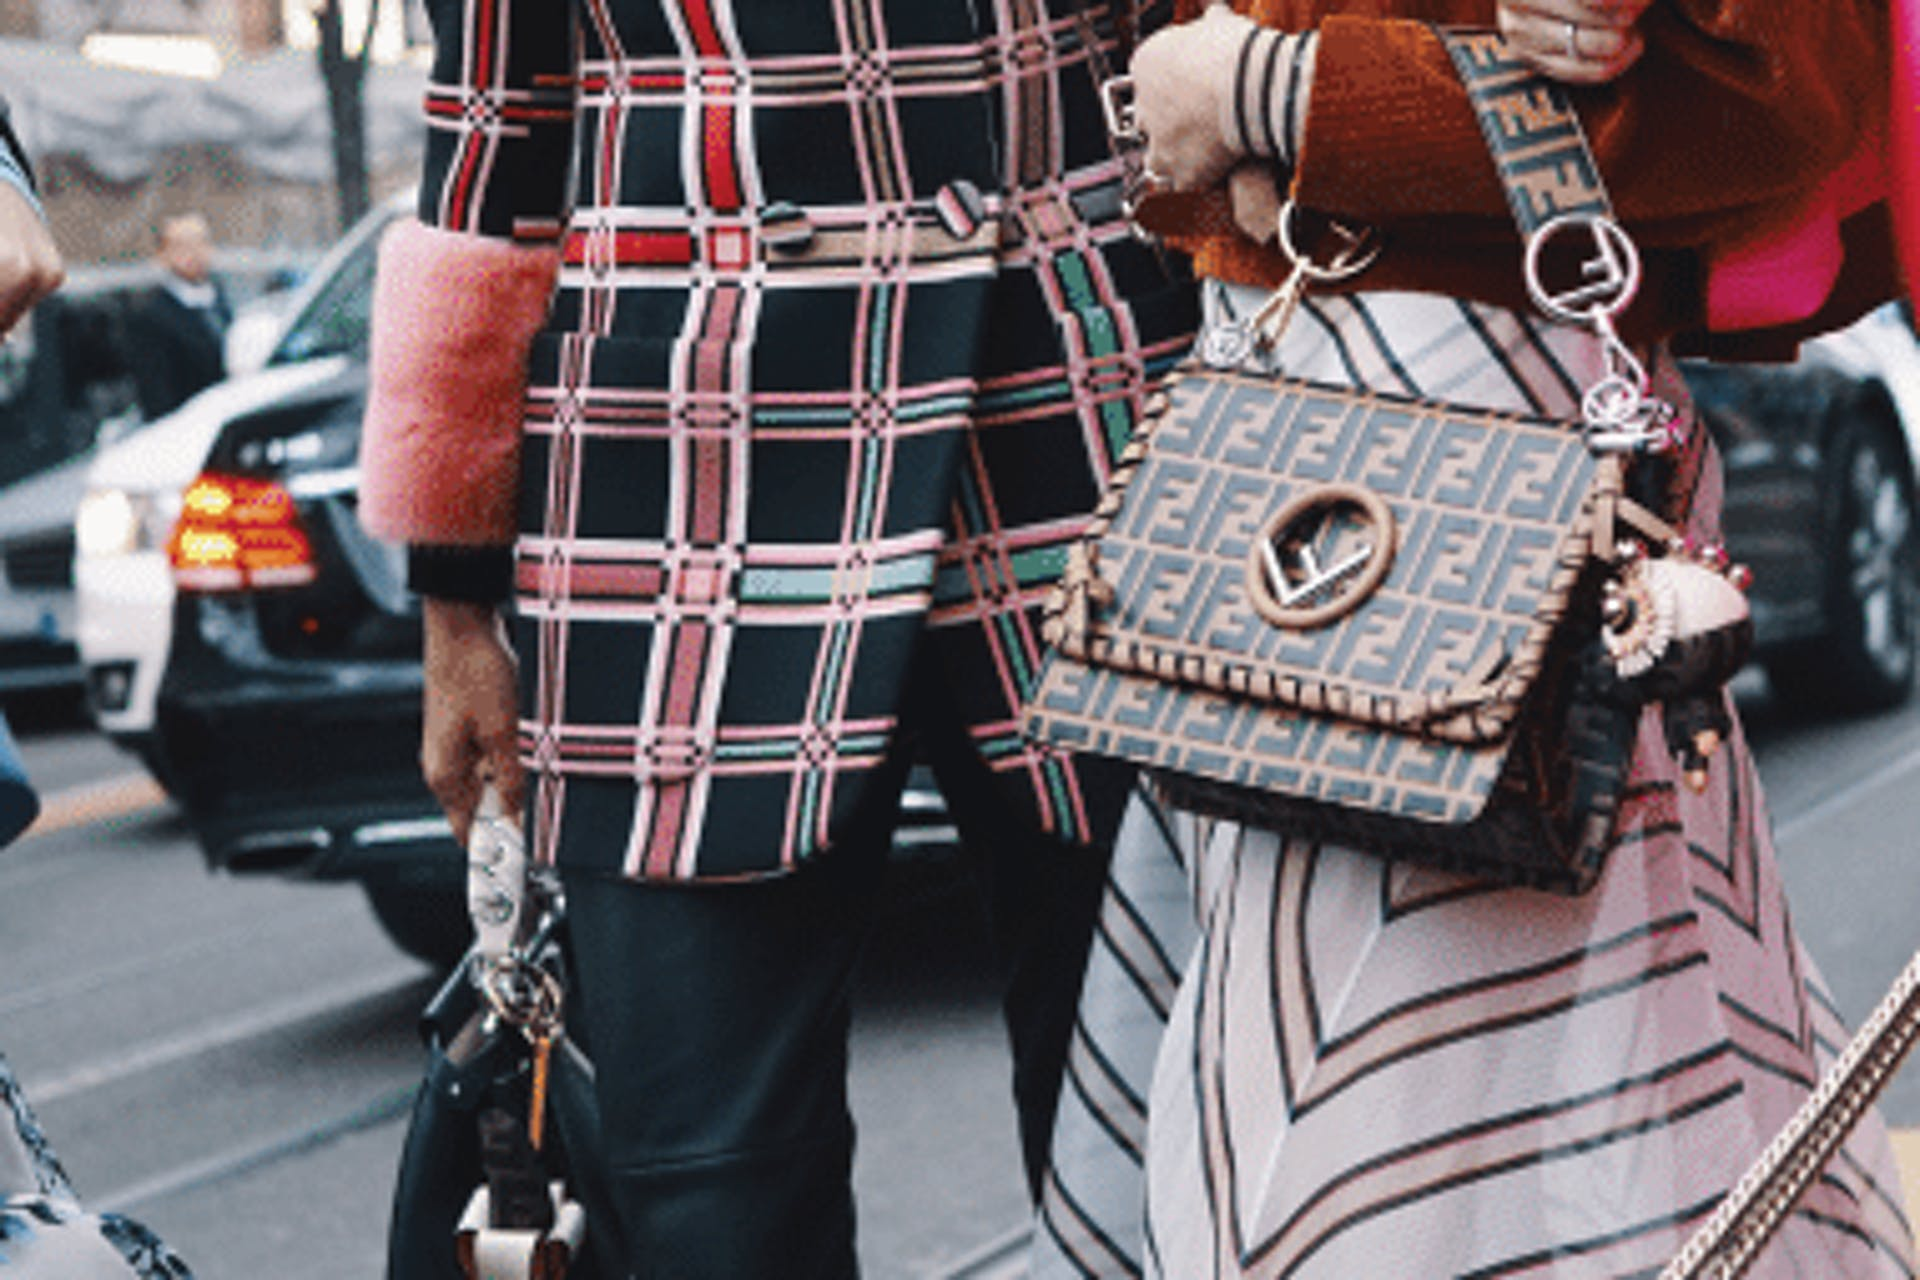 Two women, one with a handbag both wearing patterned clothing.